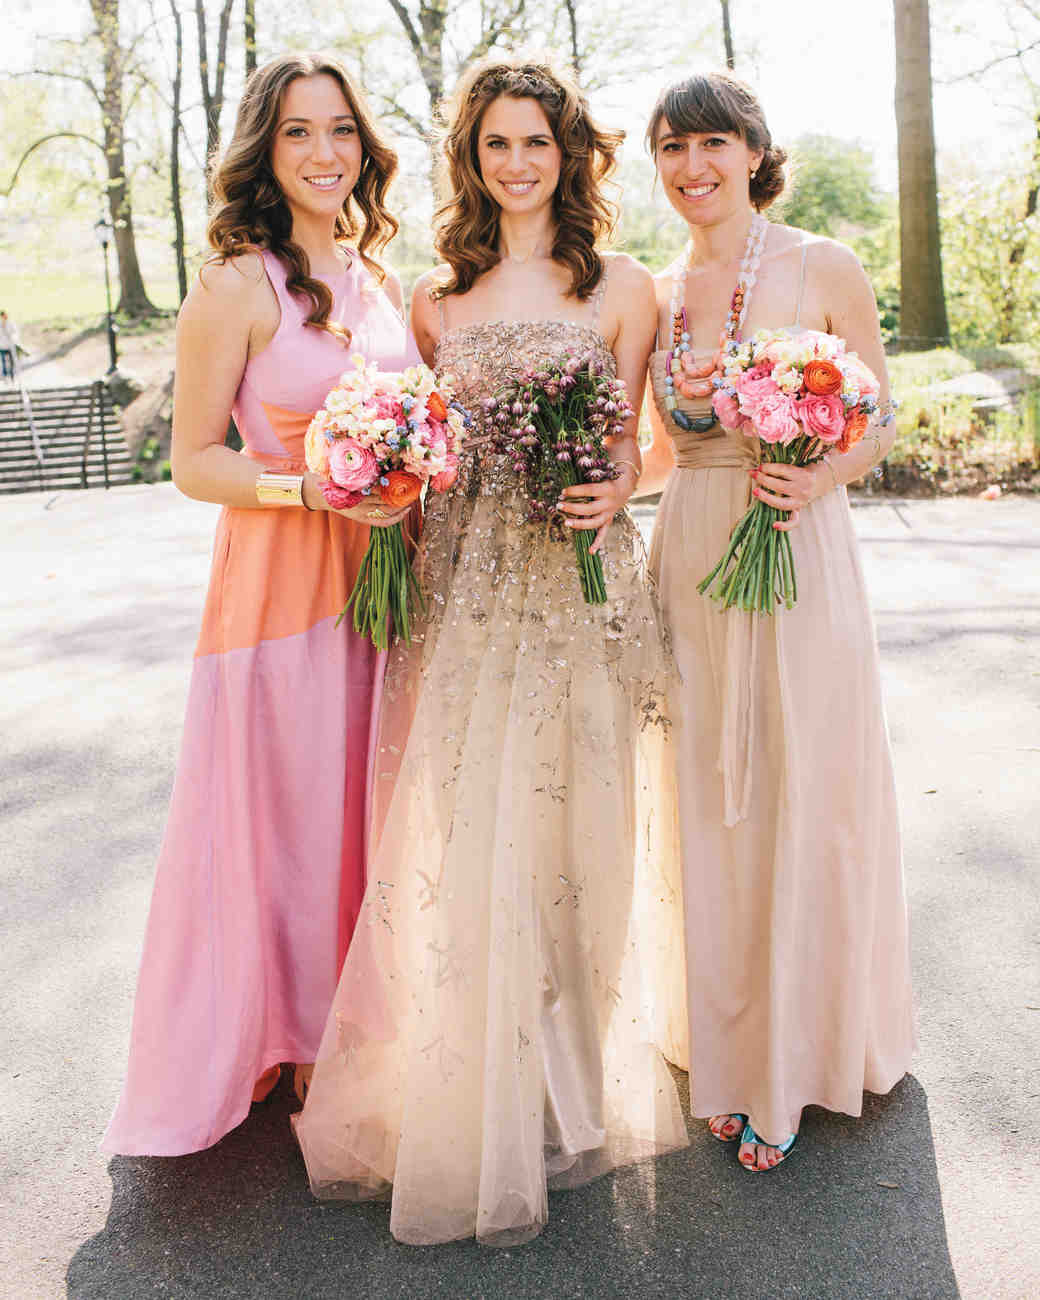 17 jewish wedding traditions for your big day martha stewart the shomer and shomeret ombrellifo Image collections